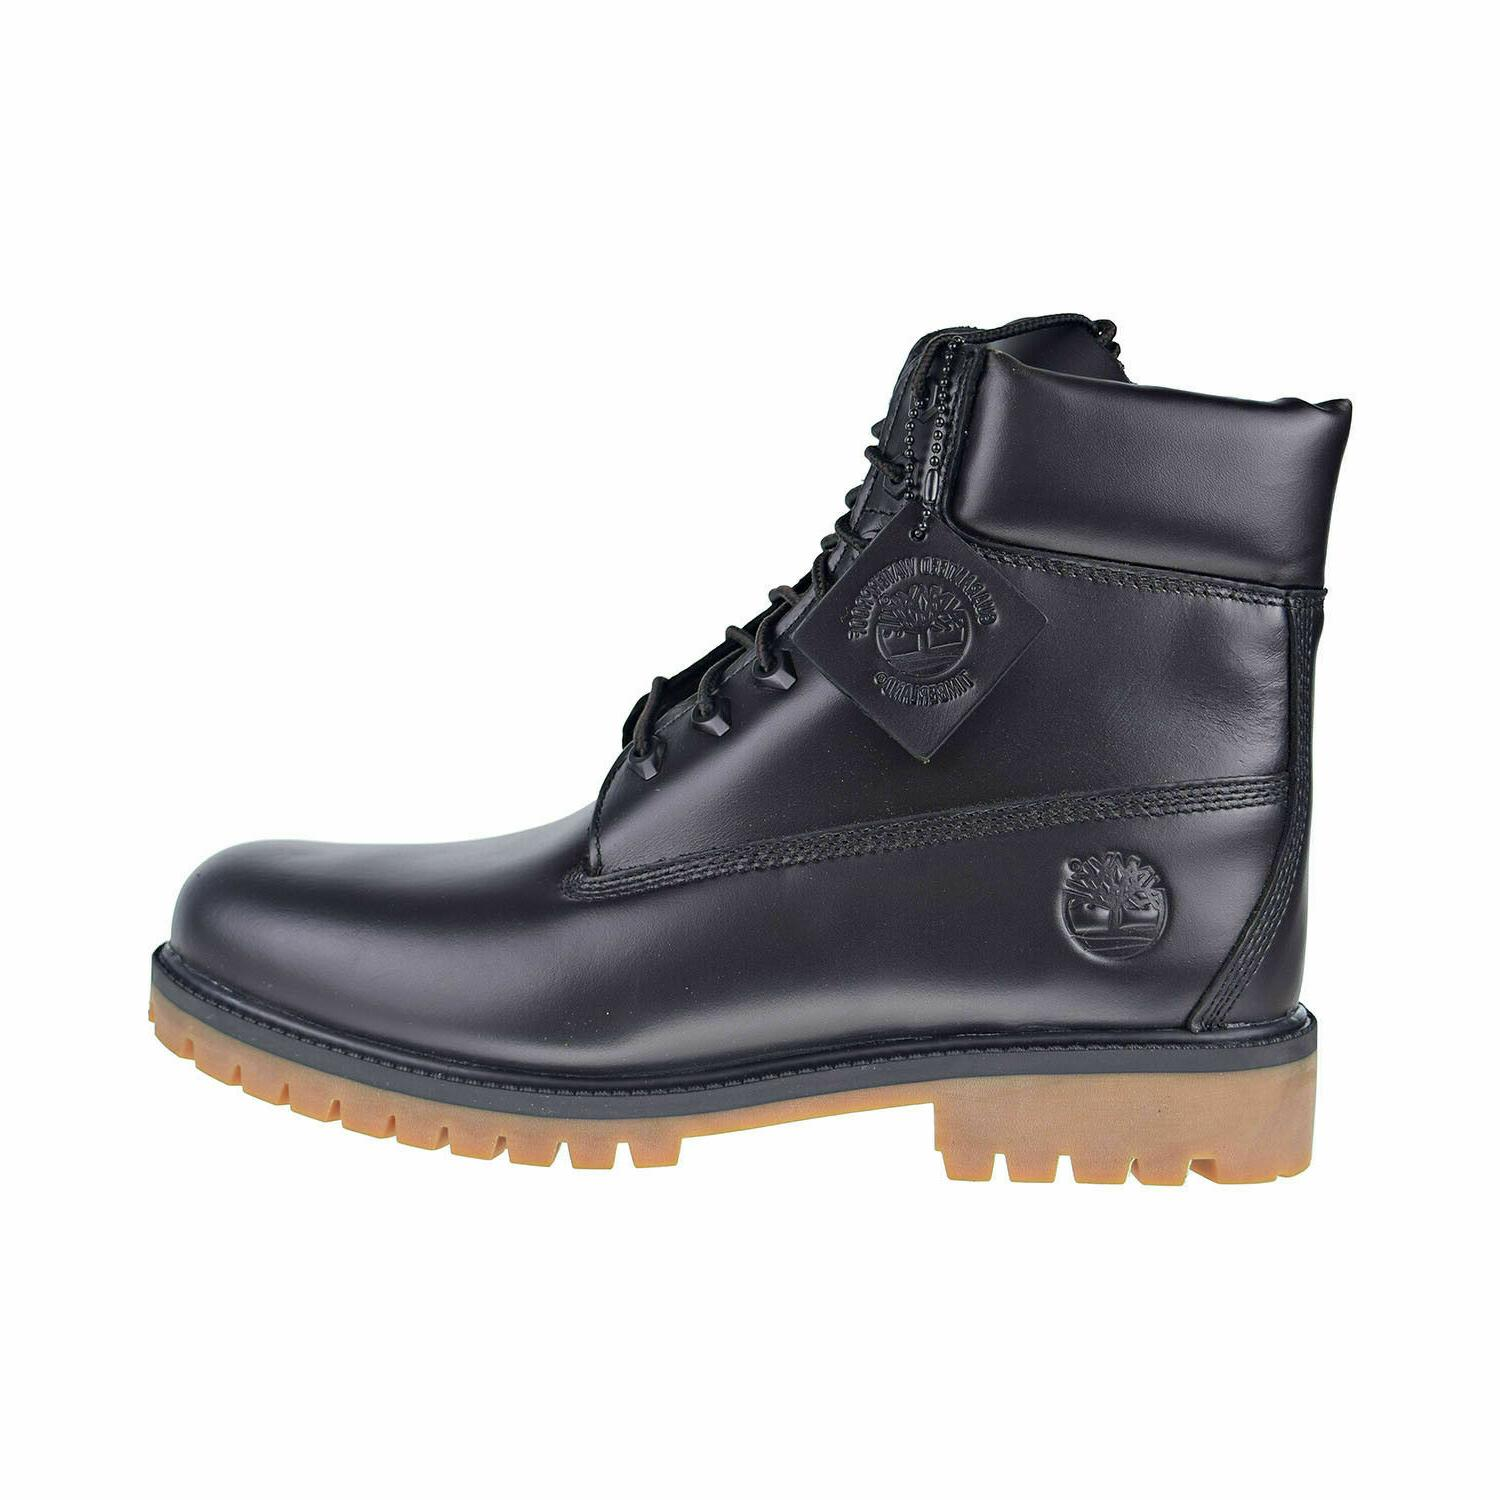 heritage 6 inch wp men s boots